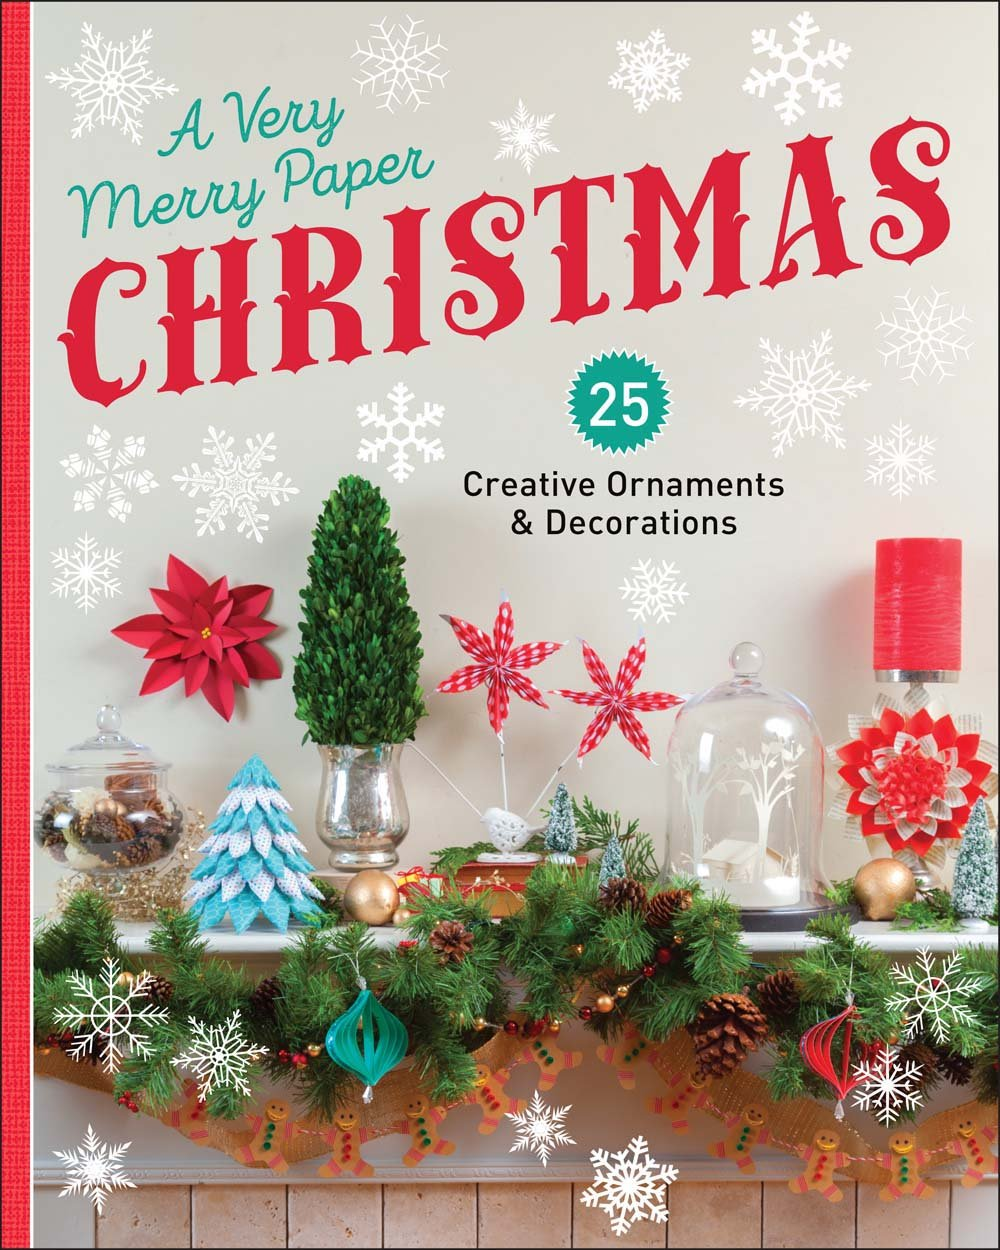 Paper Christmas Decorations.A Very Merry Paper Christmas 25 Creative Ornaments